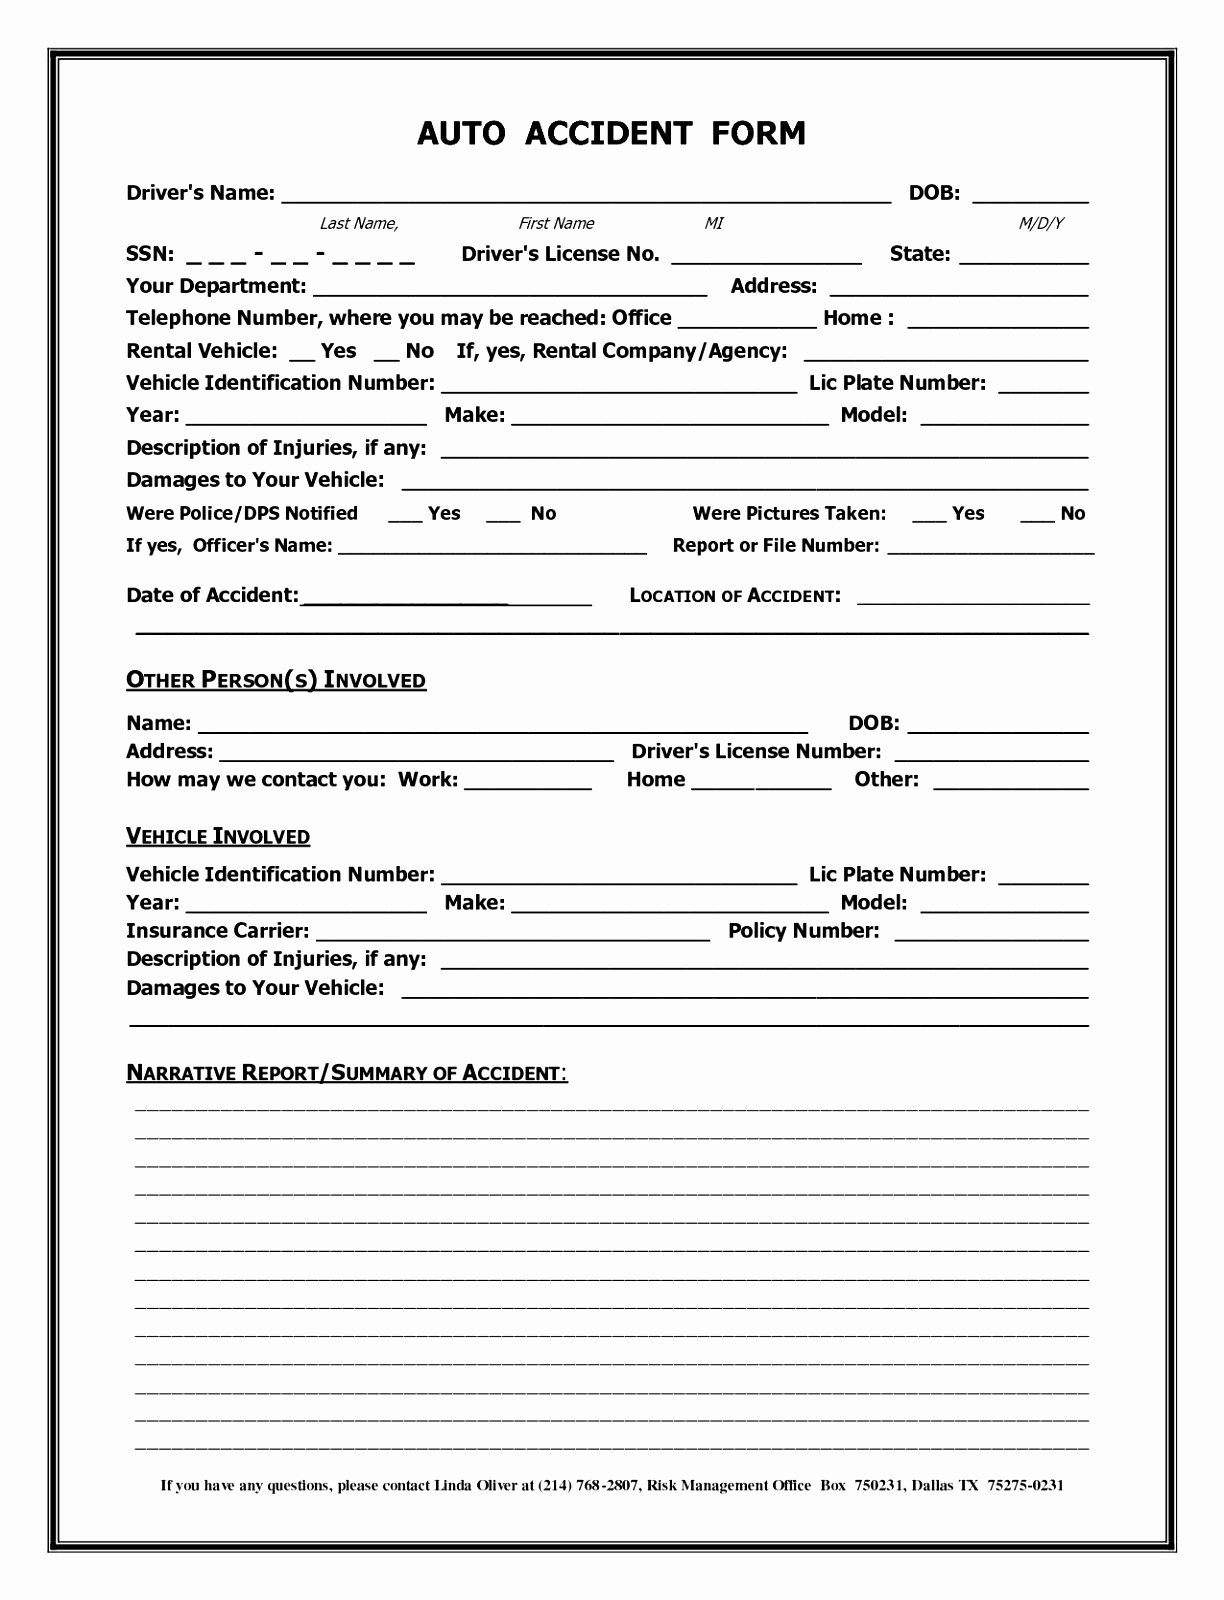 Accident Report Form Template Uk Of Motor Vehicle Choice Image In Vehicle Accident Report Form Template